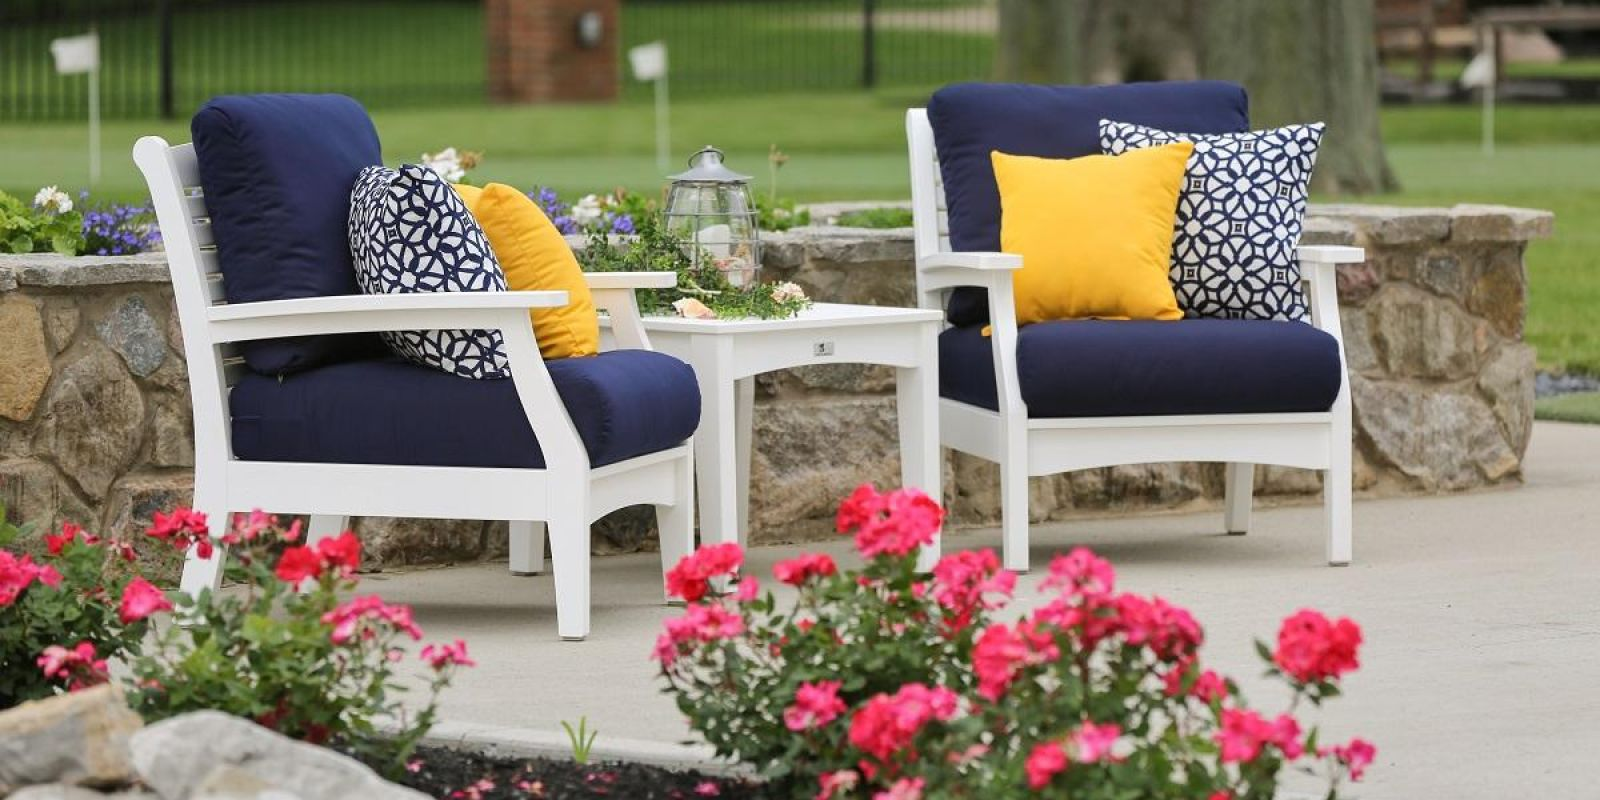 Outdoor Furniture | American Casual Living on Porch & Patio Casual Living id=12216